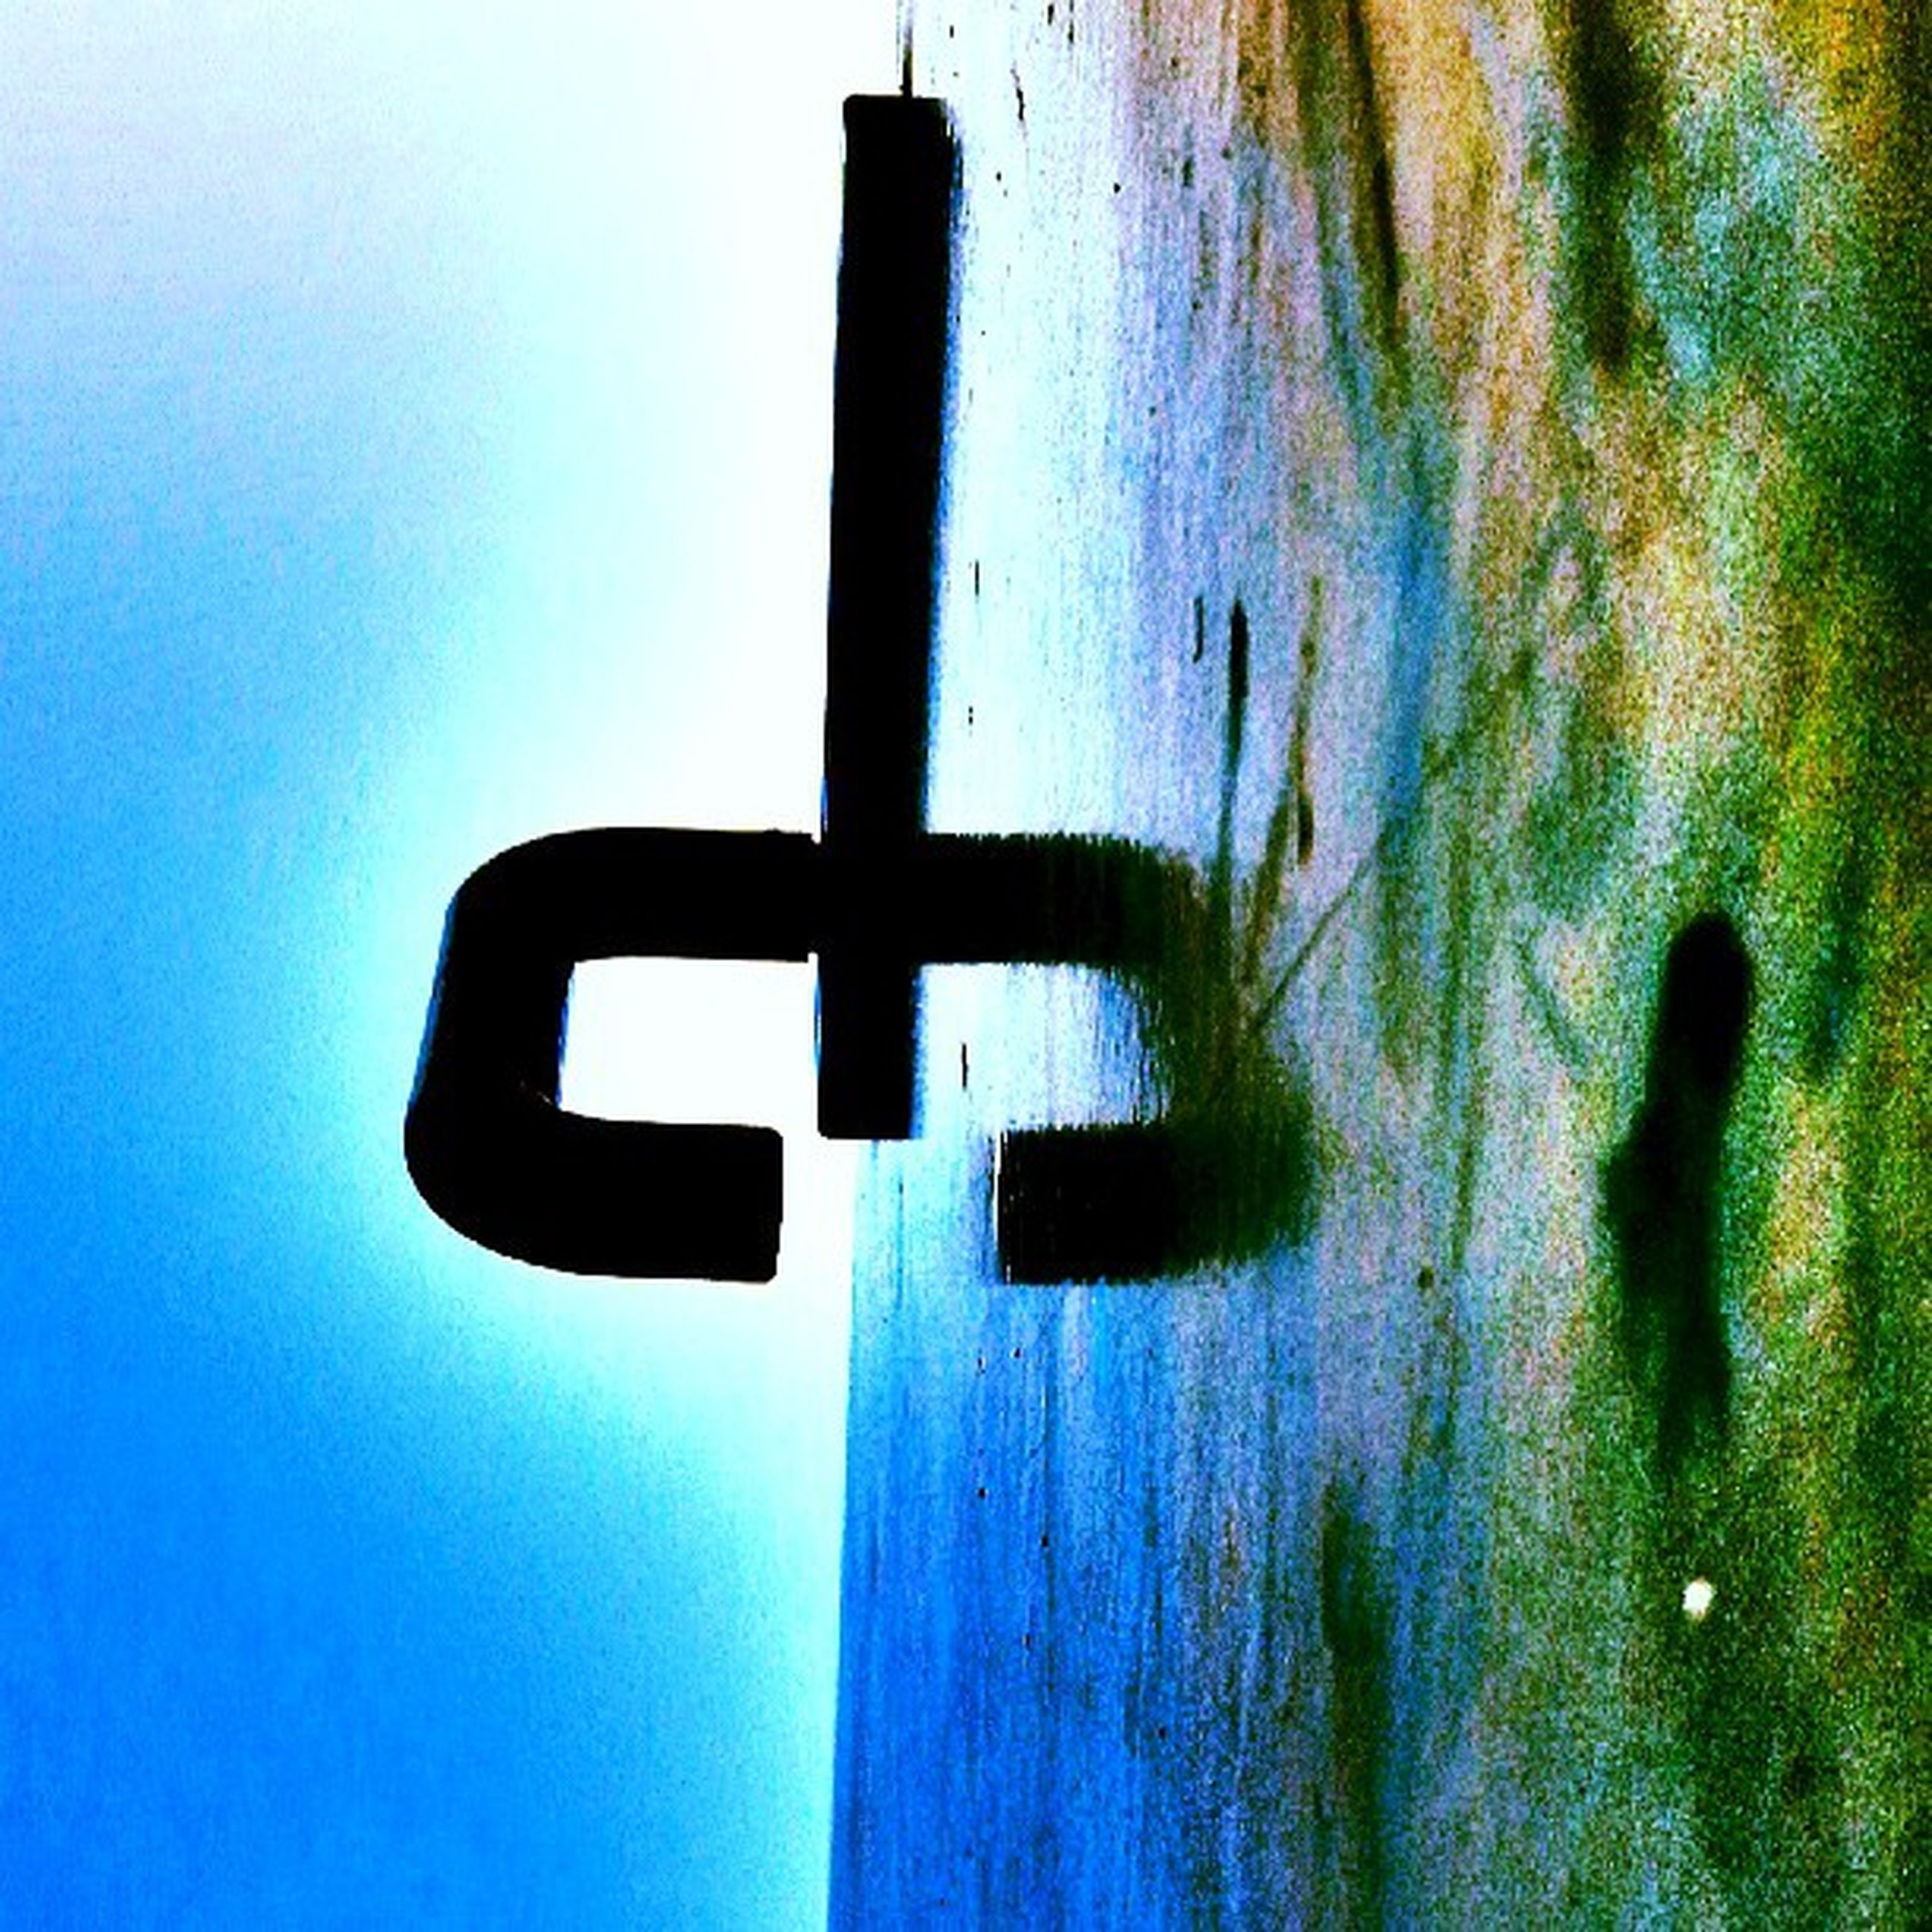 guidance, communication, direction, close-up, text, sea, safety, sky, no people, water, western script, outdoors, blue, protection, pole, sign, security, road sign, sunset, arrow symbol